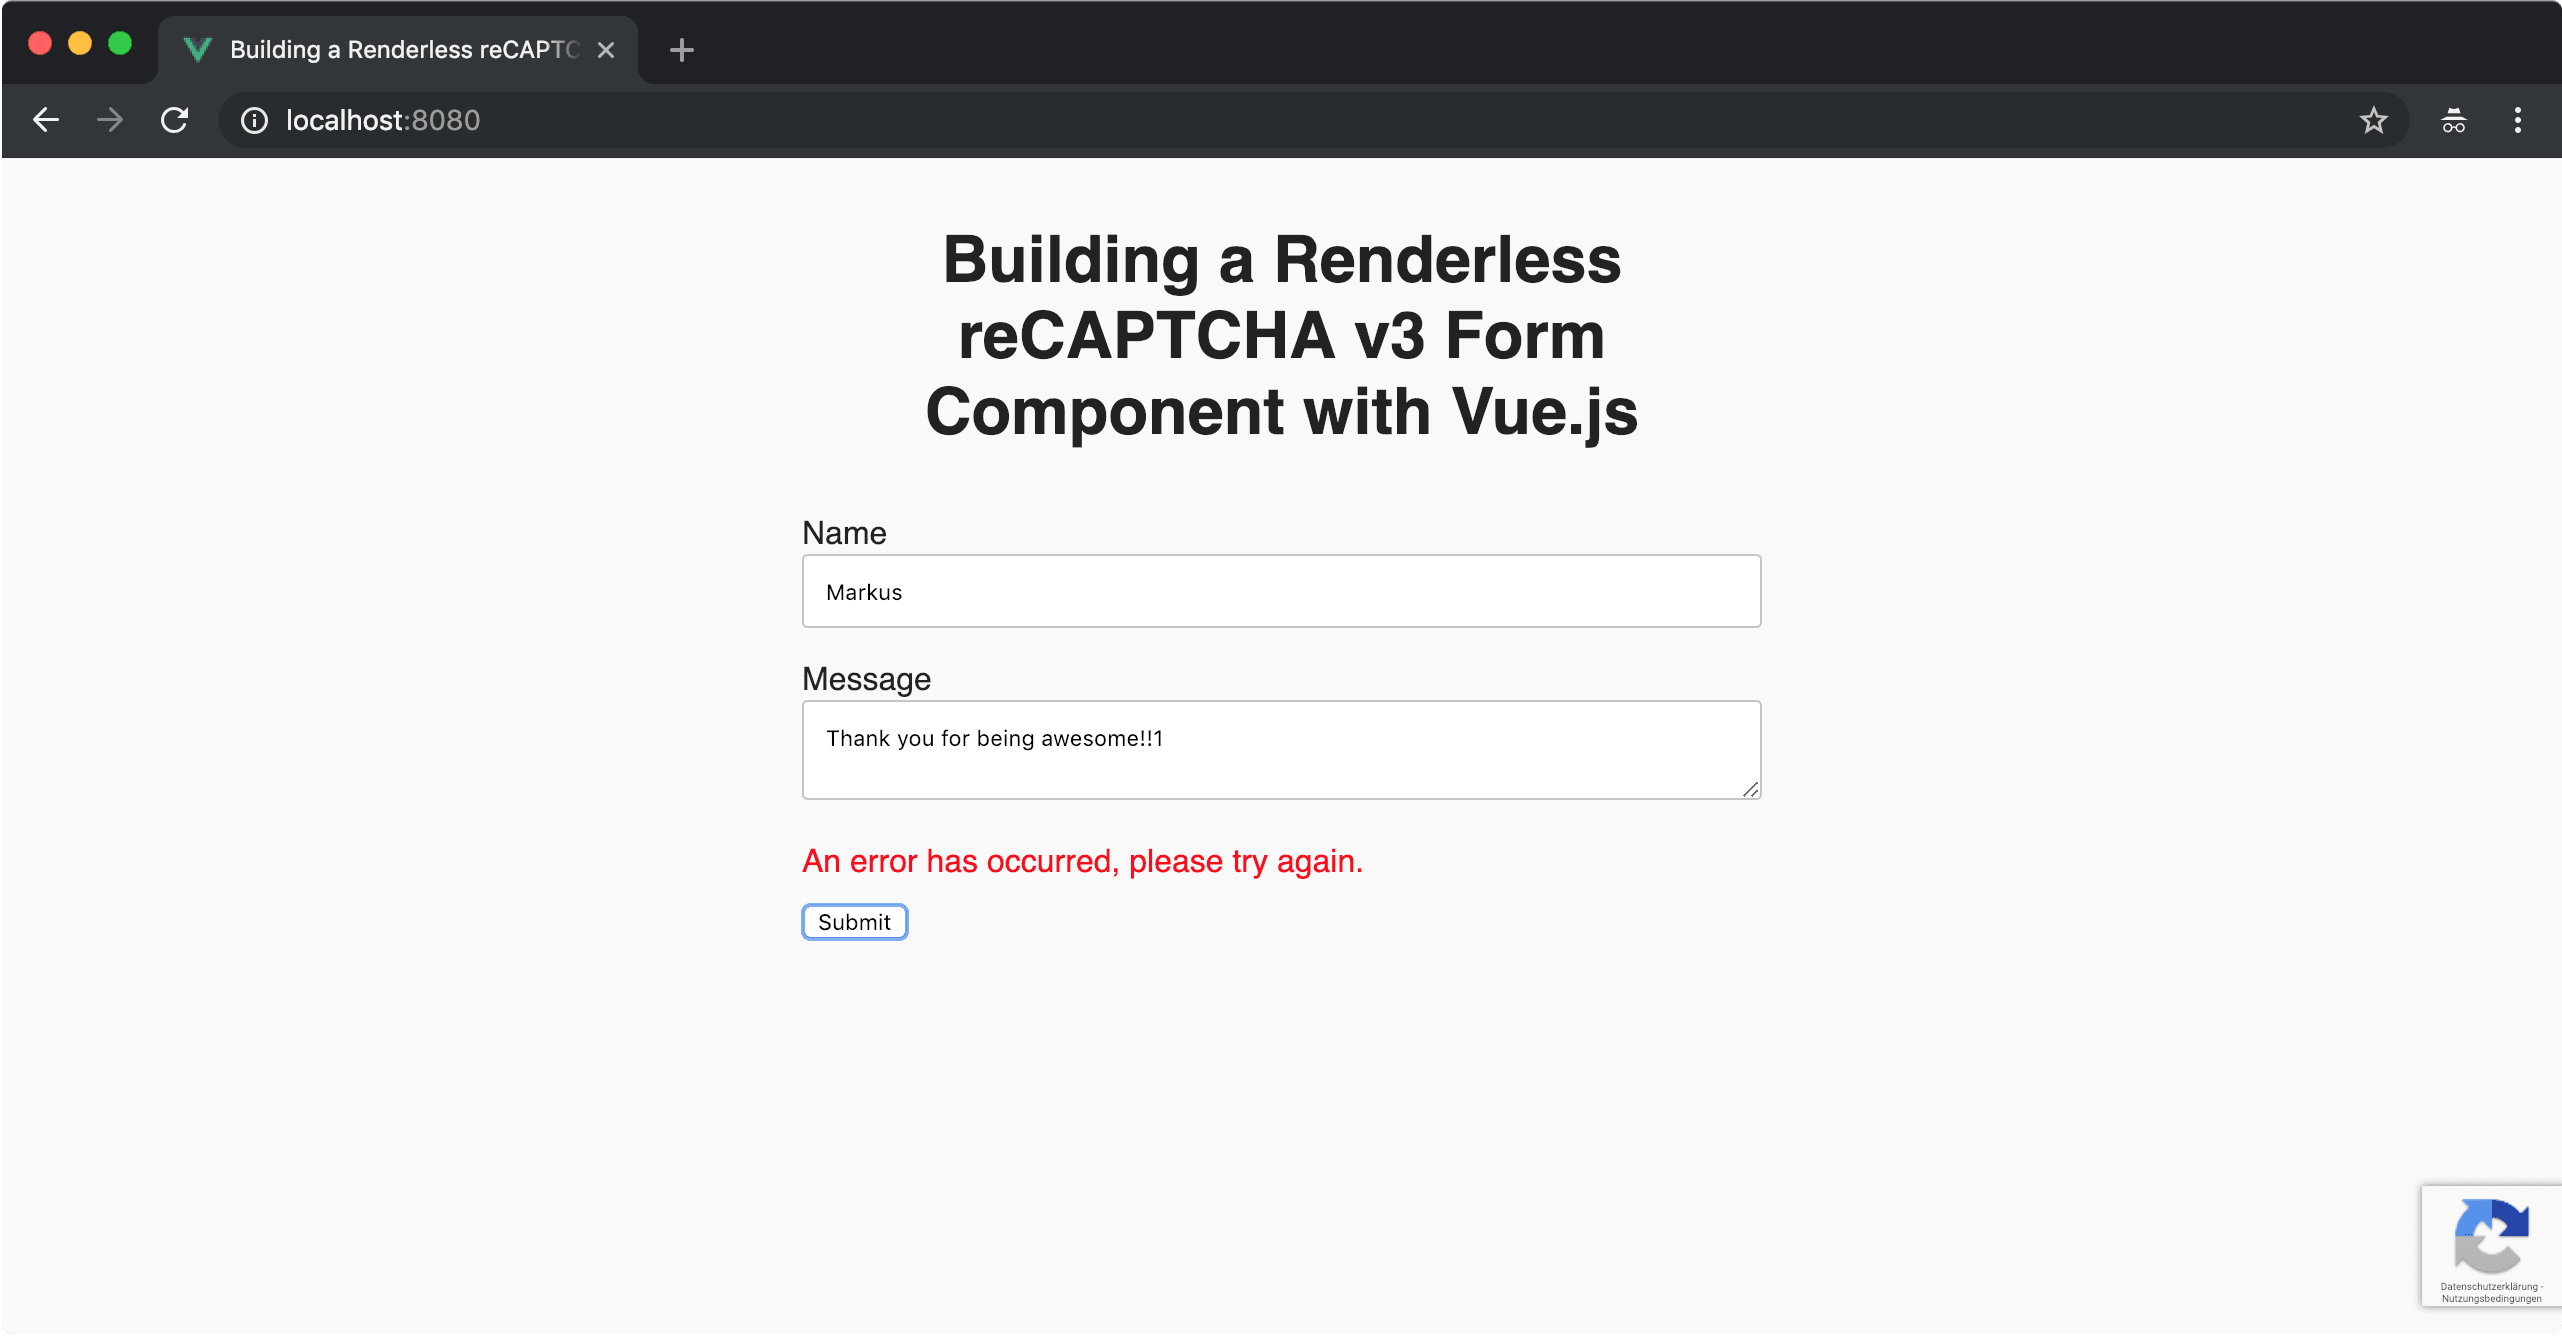 Building a Renderless reCAPTCHA v3 Form Component with Vue